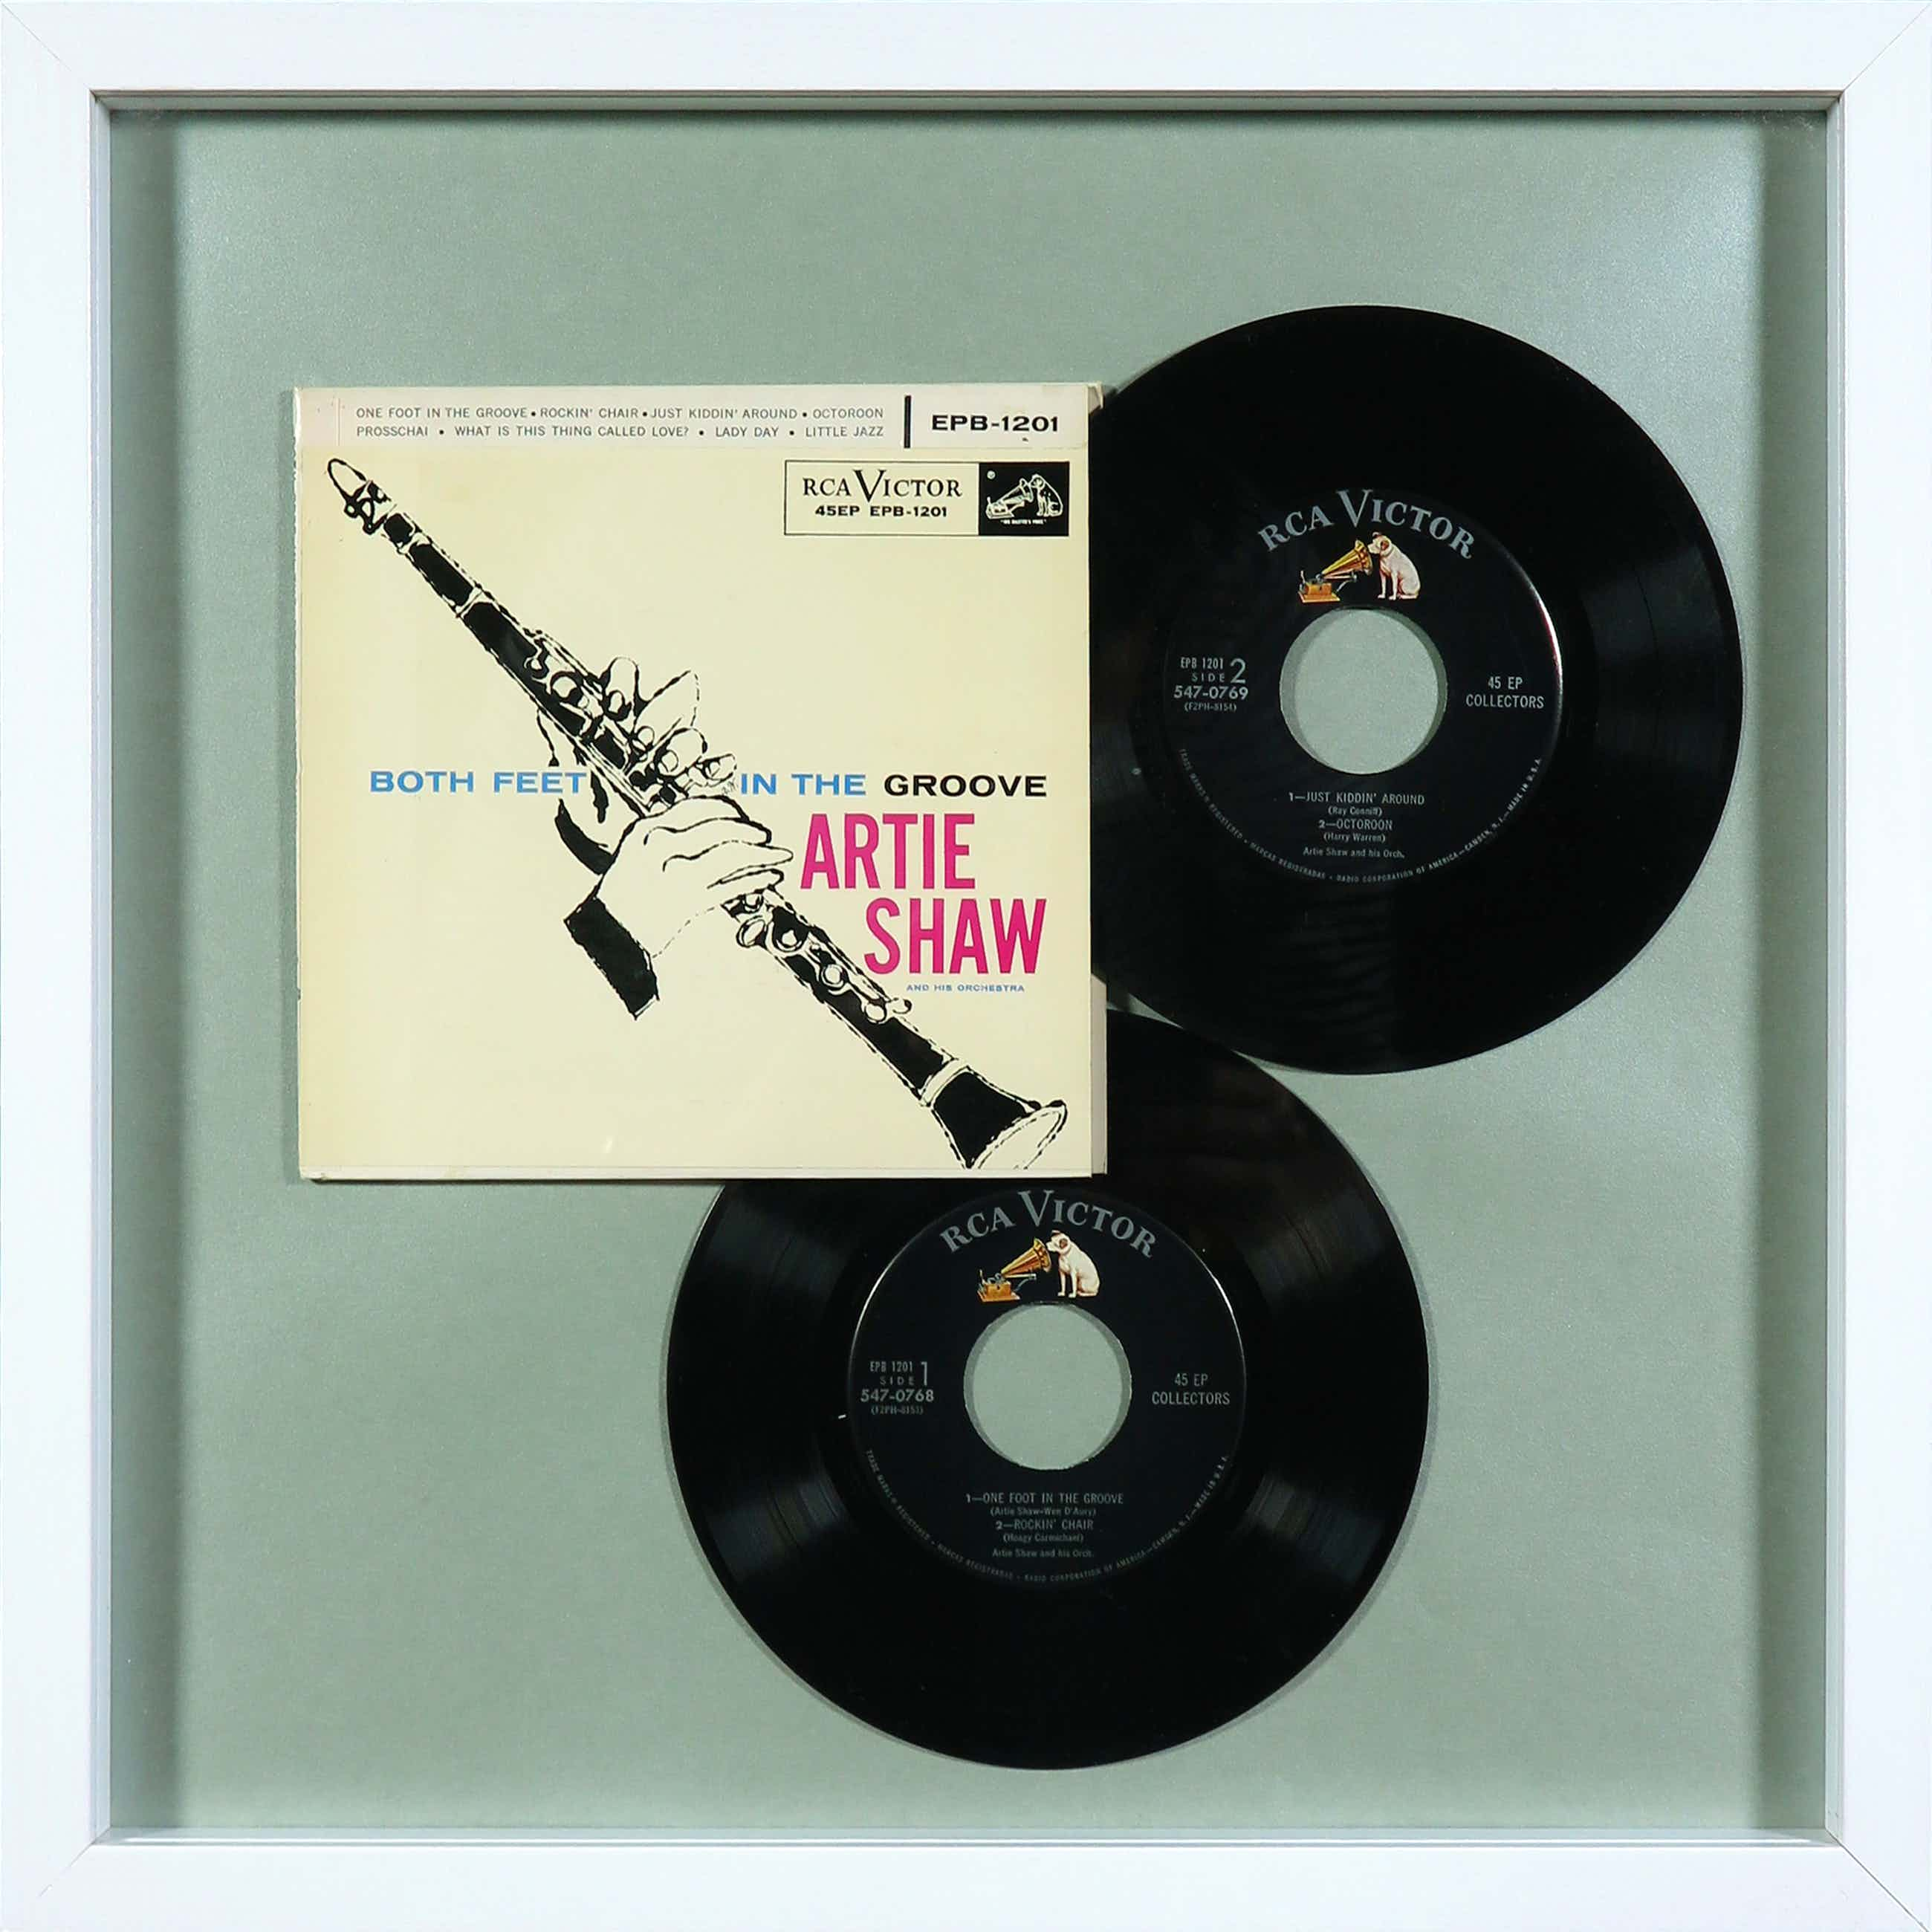 Andy Warhol - Both feet in the groove - Artie Shaw and his Orchestra kopen? Bied vanaf 60!